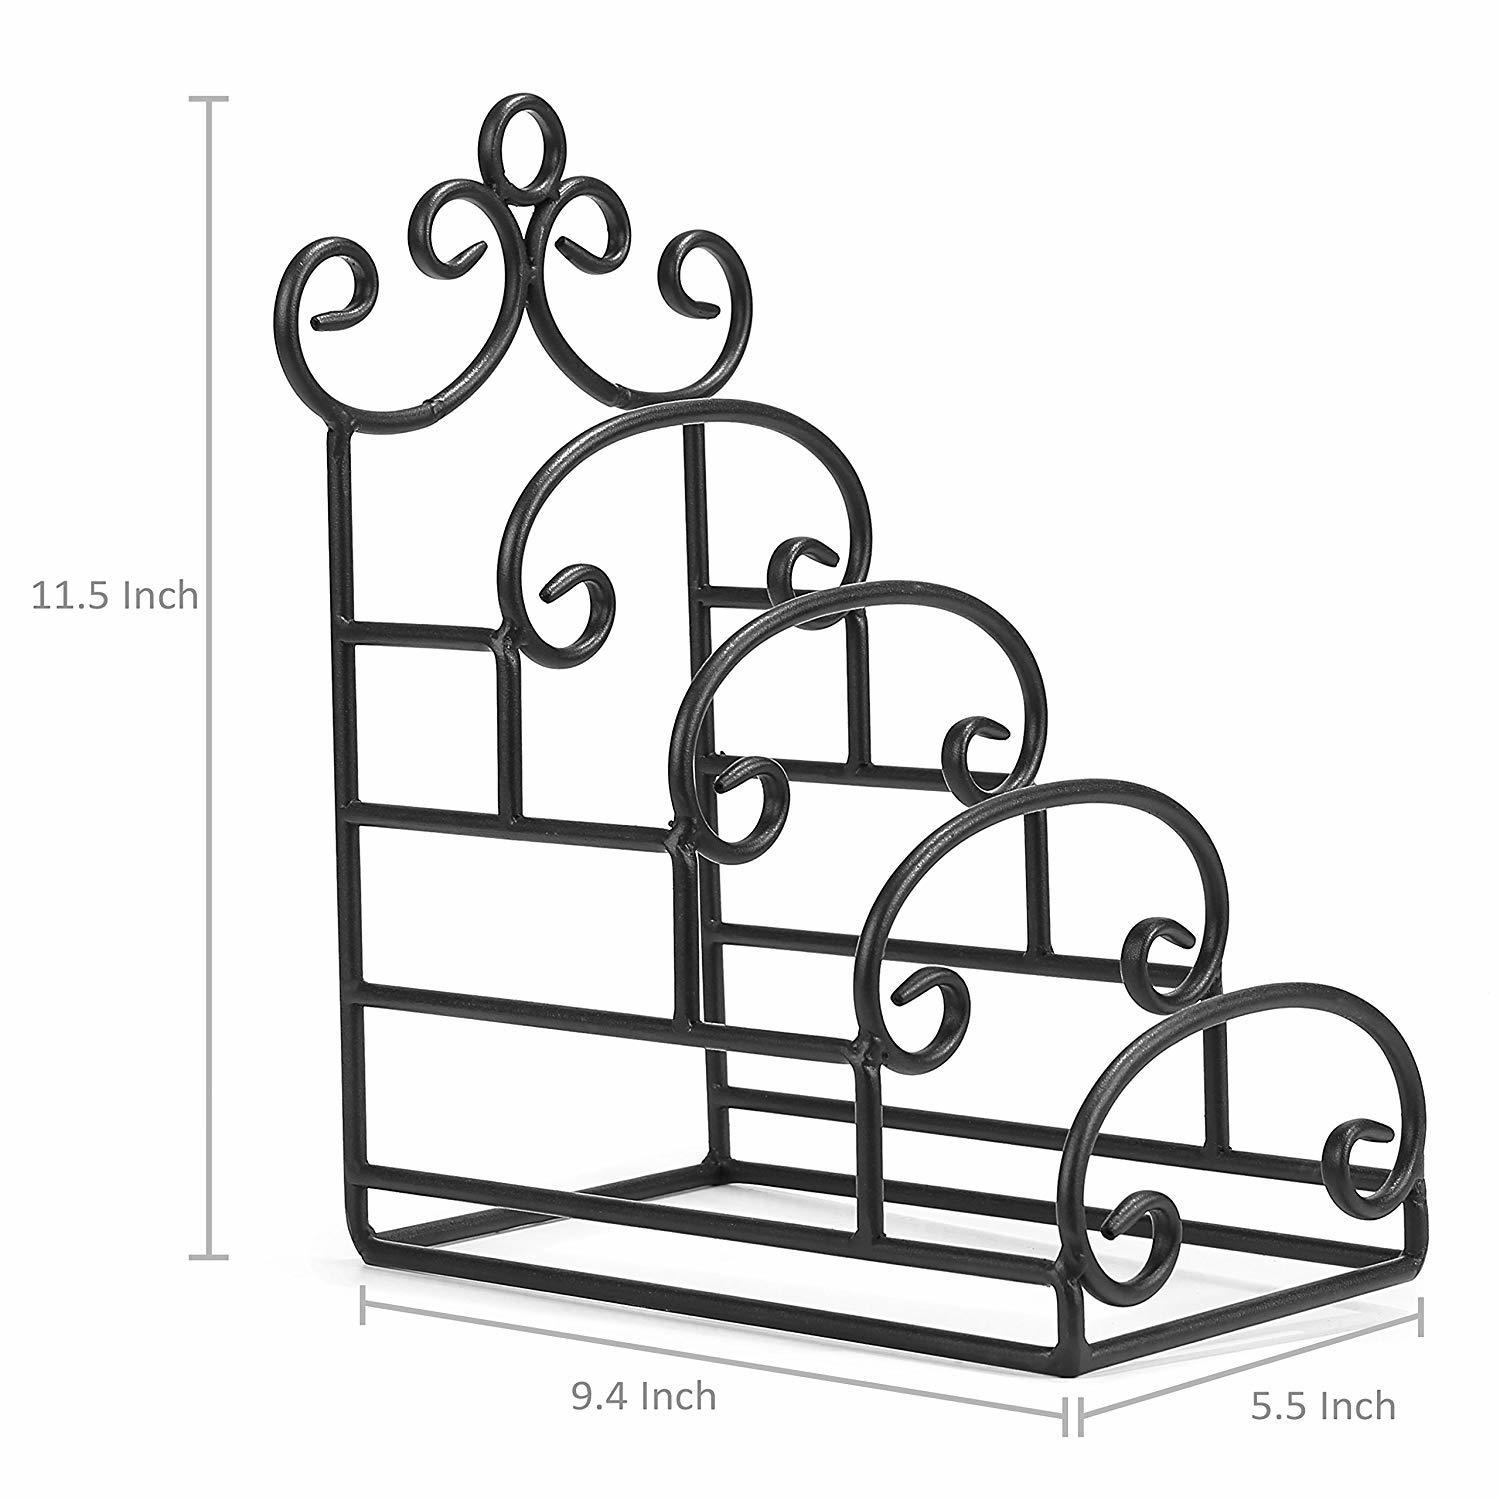 4-Tier Vintage-Style Iron Plate Display Stand Dish Drying Rack, Kitchen and Dining, Dish, Plate and Crockery Holder